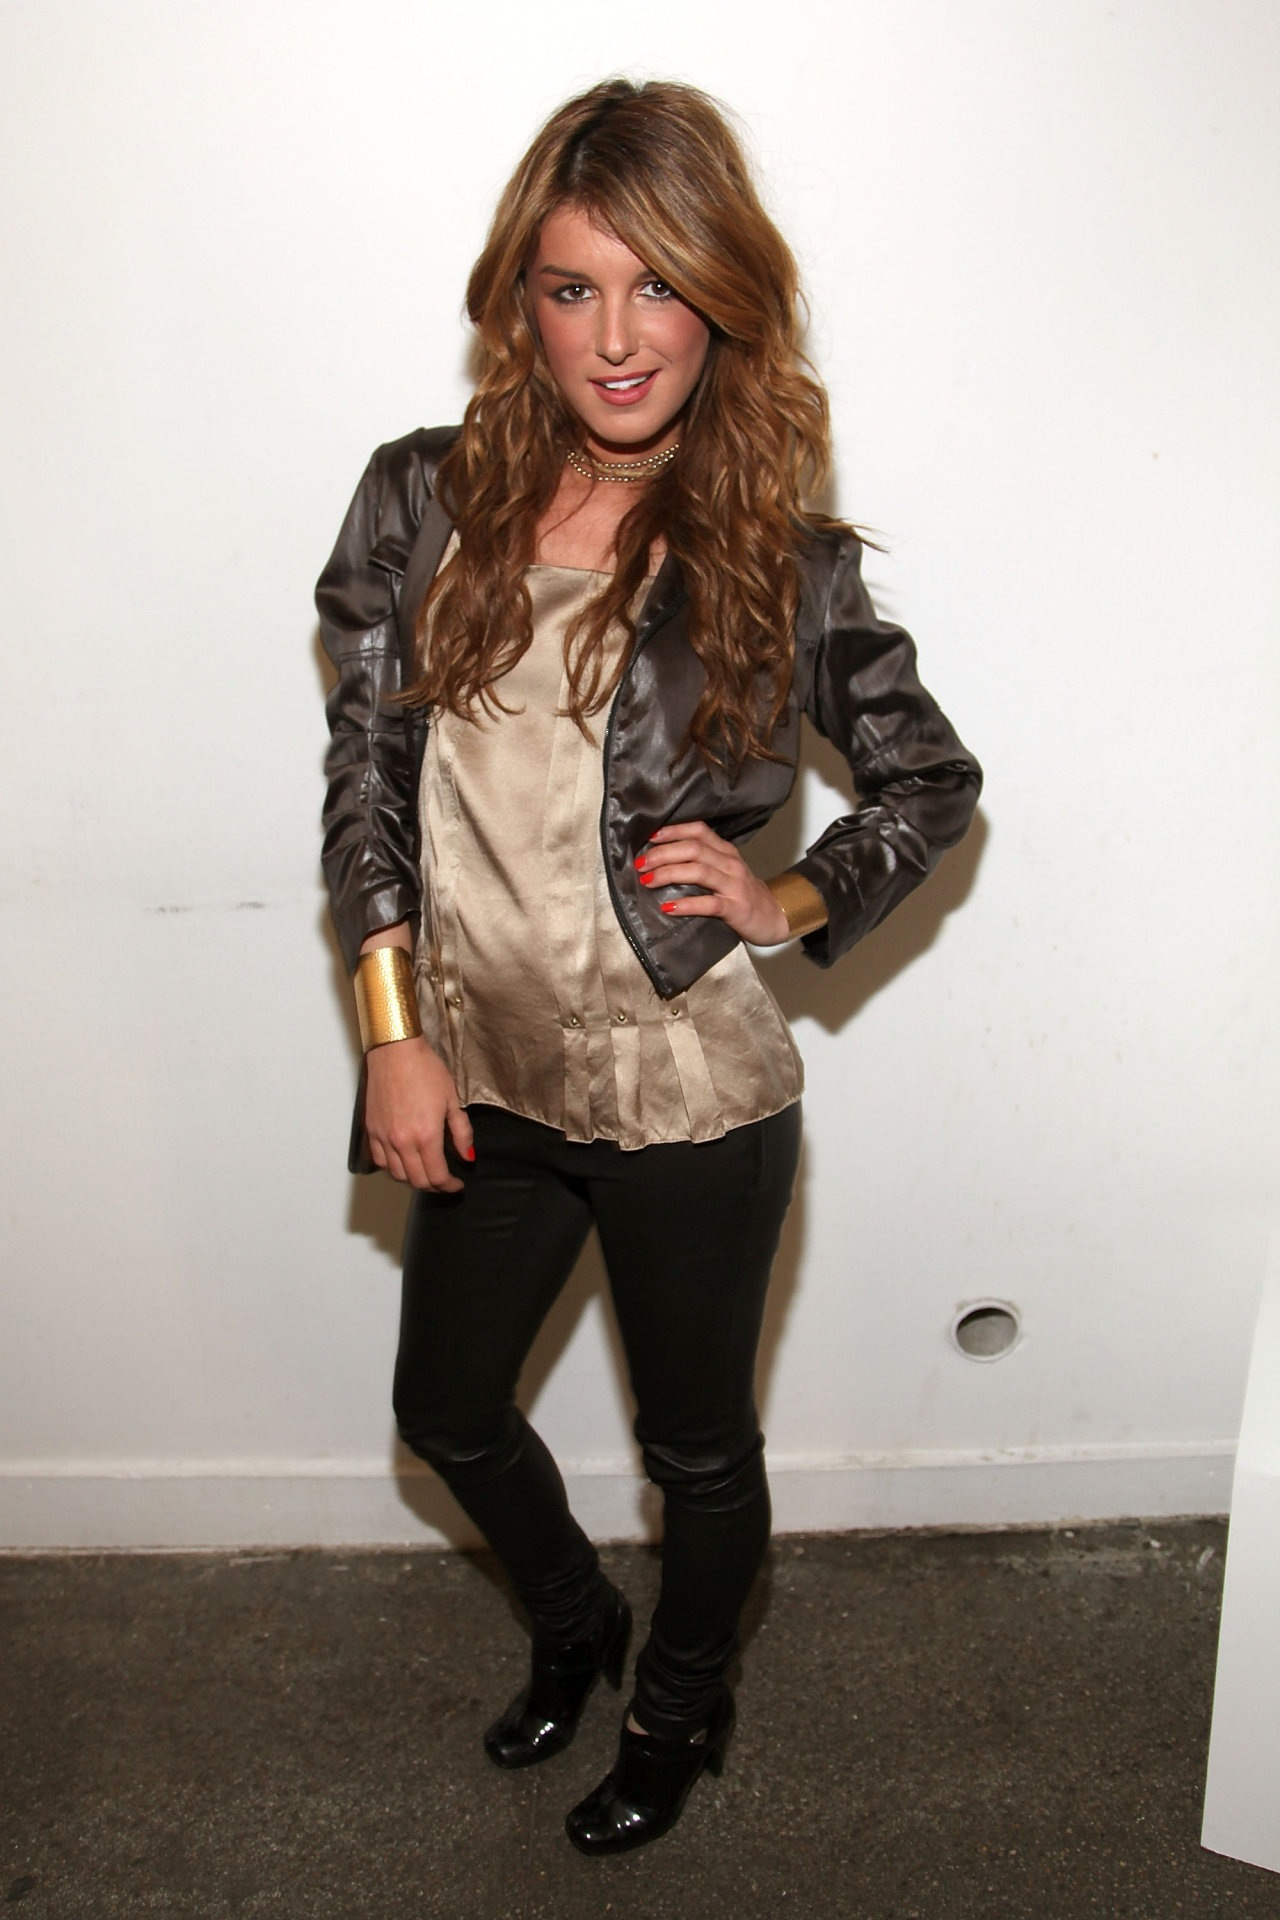 Shenae Grimes leaked wallpapers